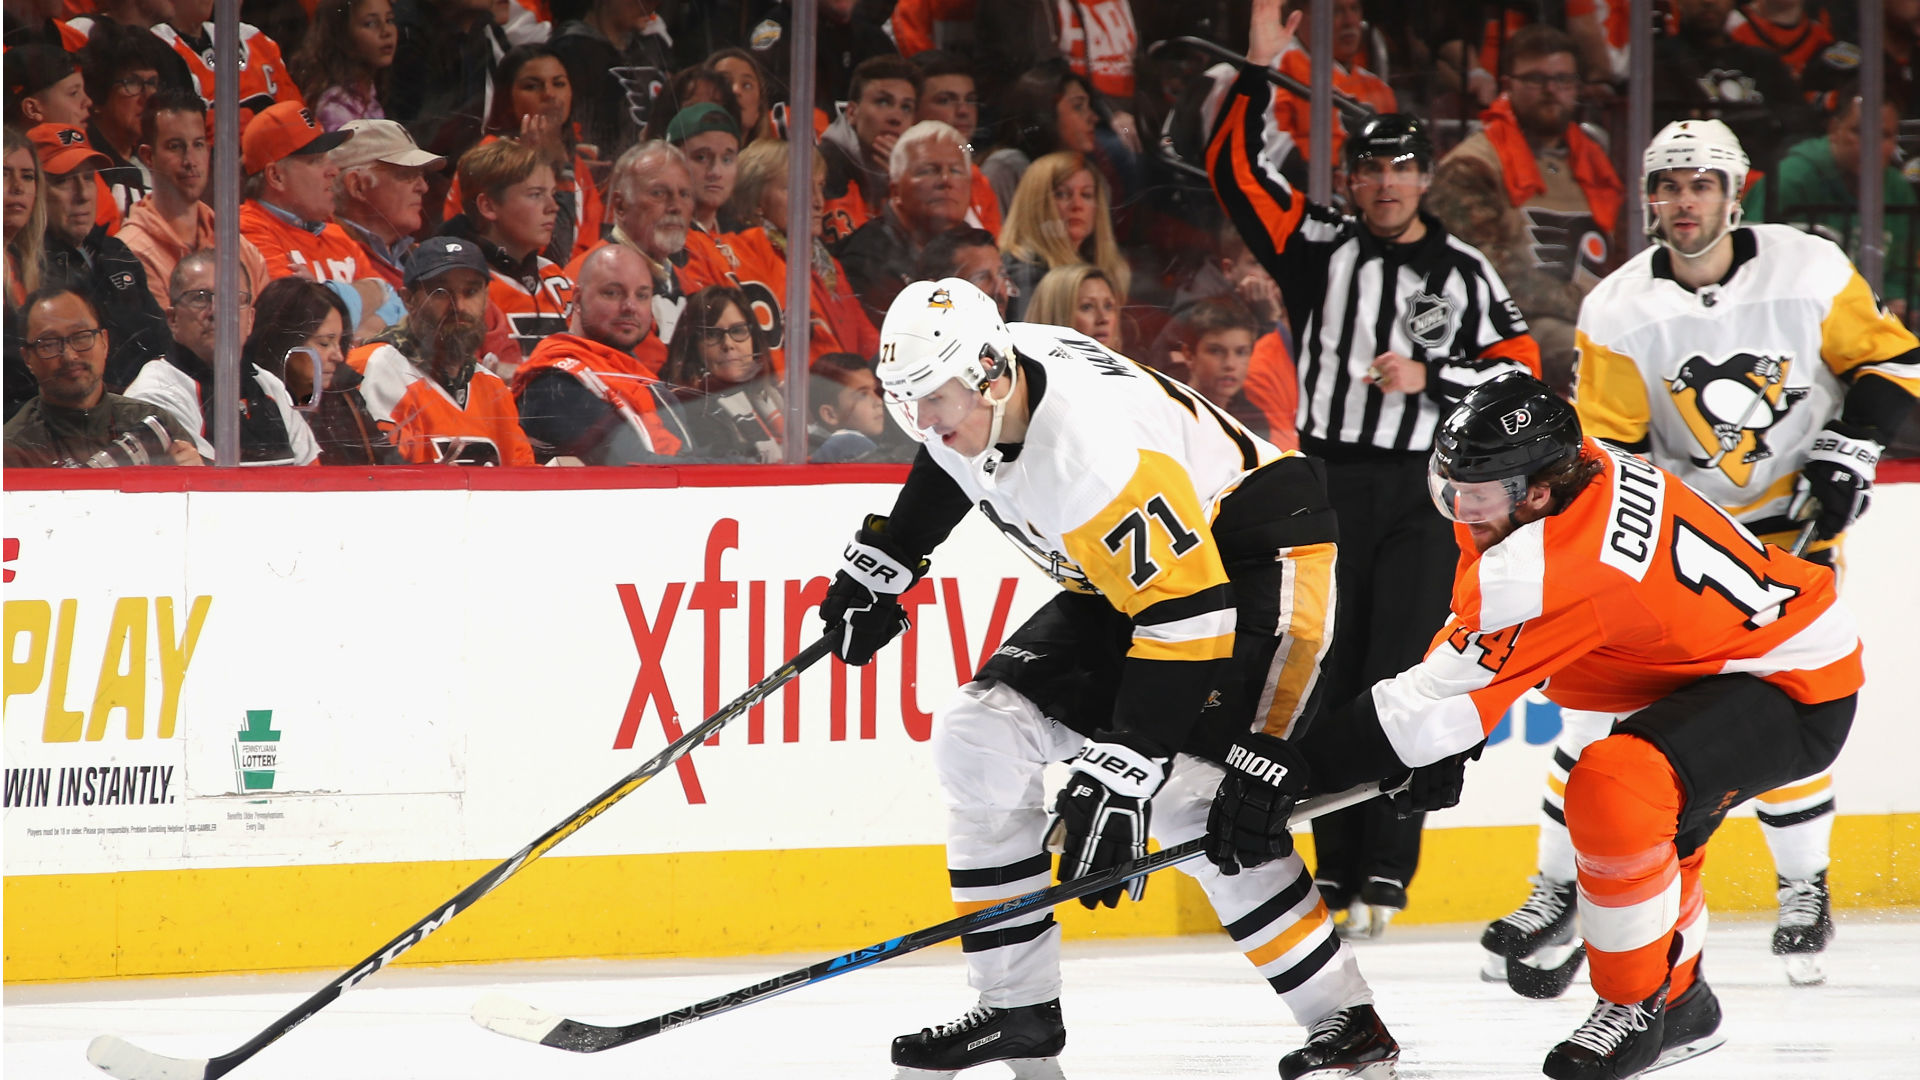 Sidney Crosby, Penguins Dominate Flyers to Take 3-1 Series Lead